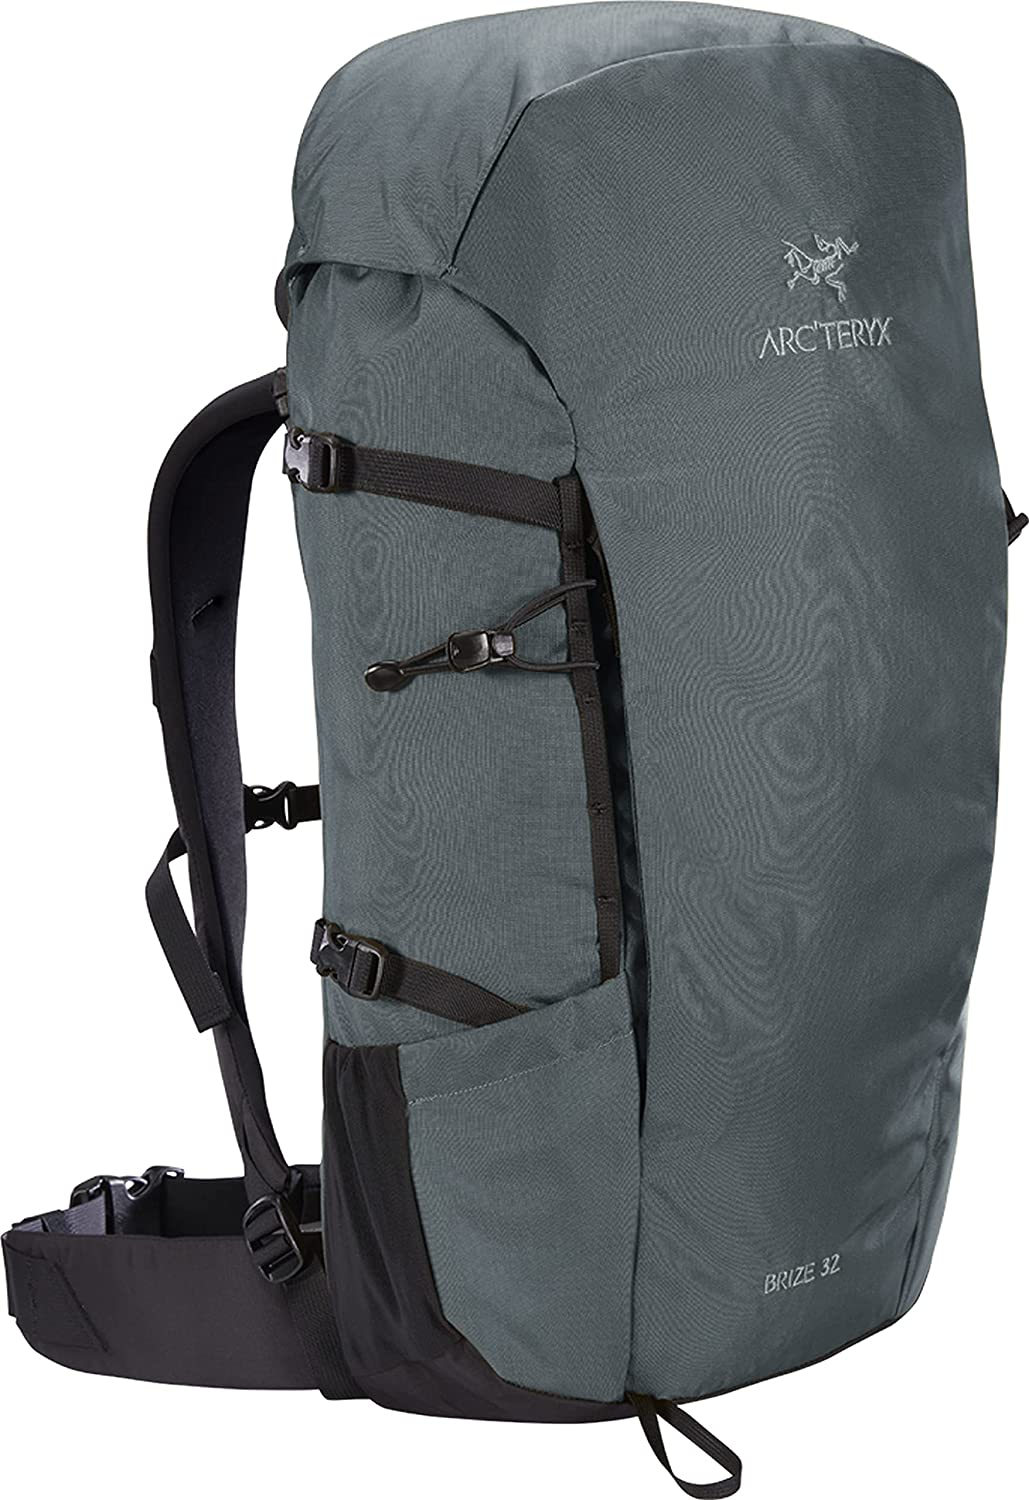 Arc'teryx Max half 43% OFF Brize 32 Backpack Daypack Hiking Eve Travel for and